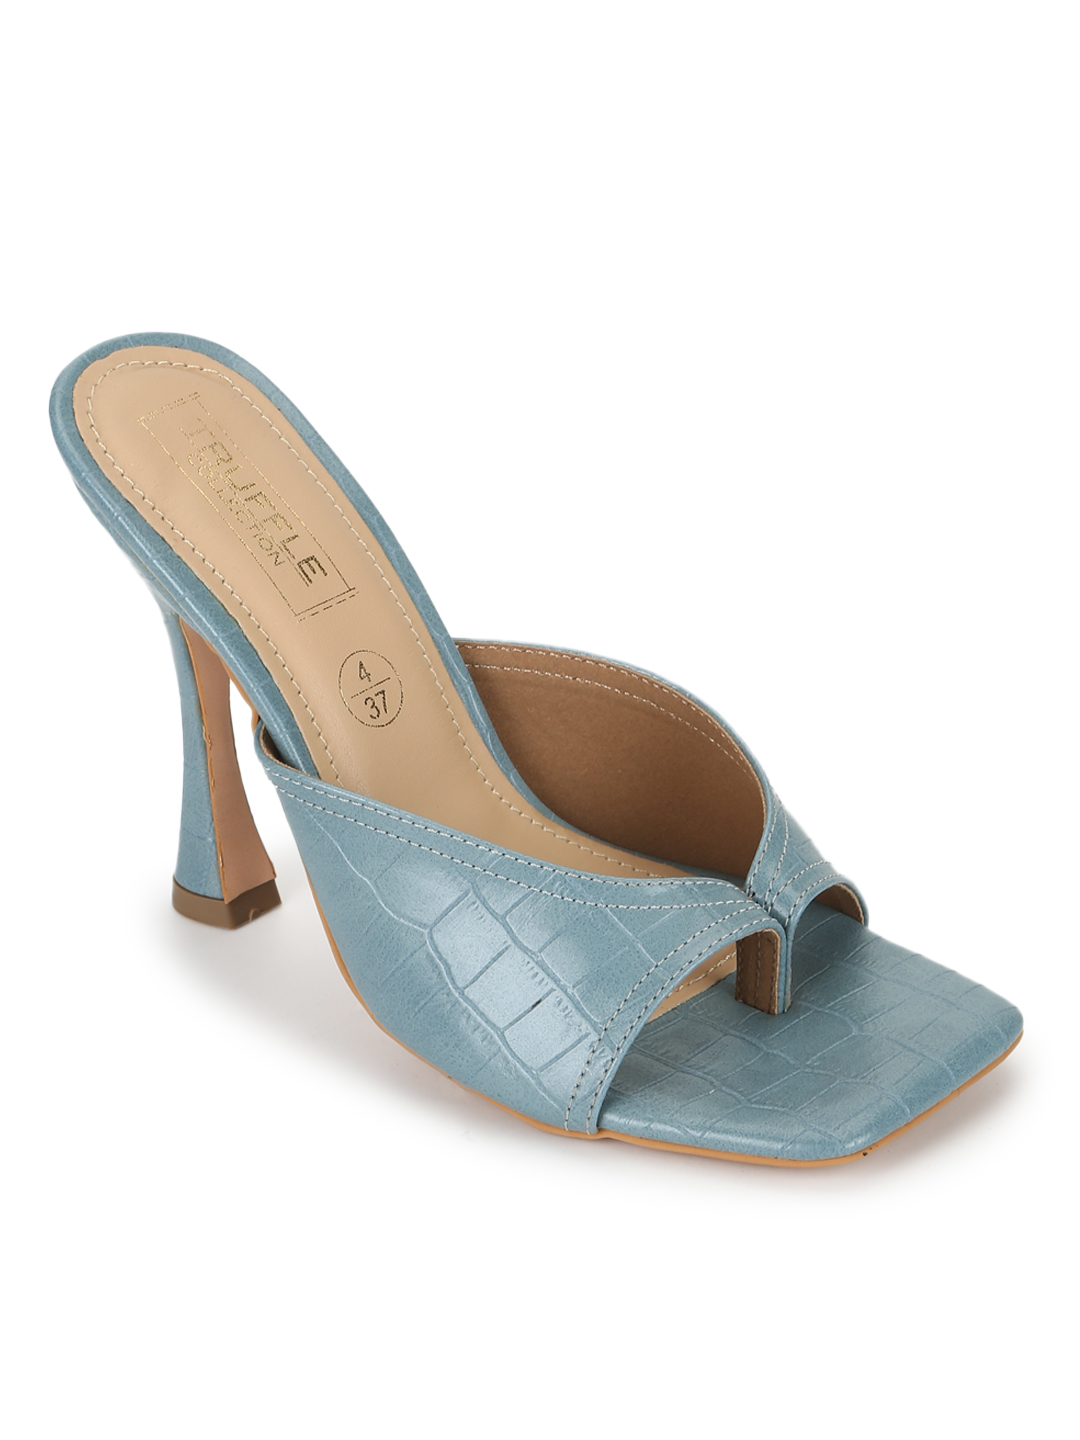 Truffle Collection   Truffle Collection Powder Blue PU High Heel Stiletto Mules